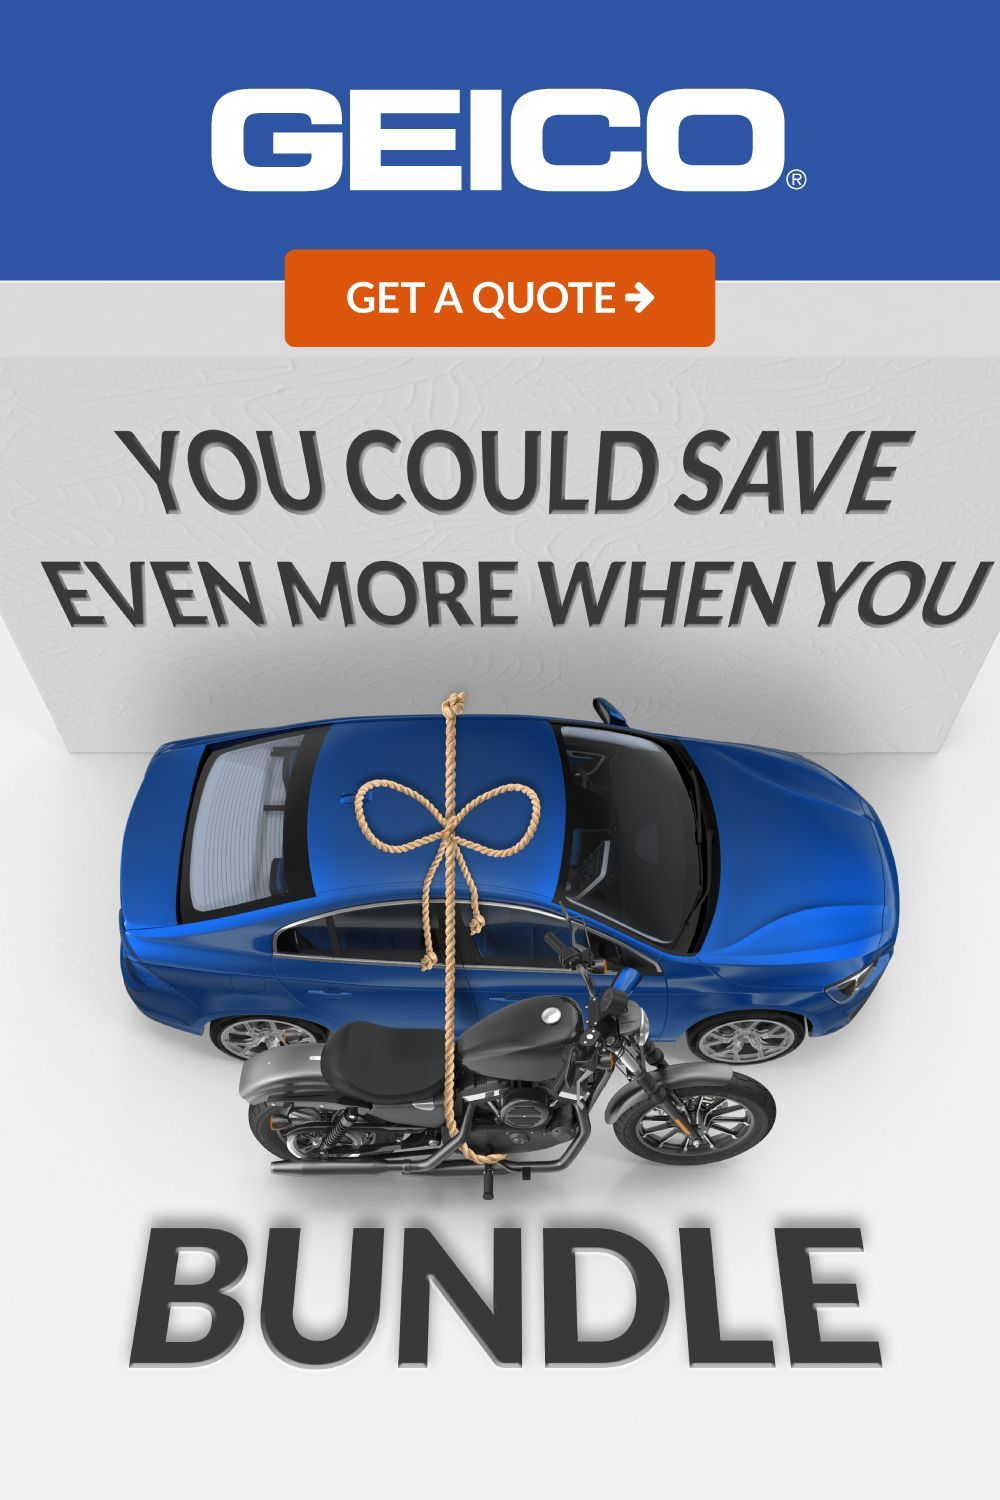 GEICO lets you bundle! Great rates, great coverage. You